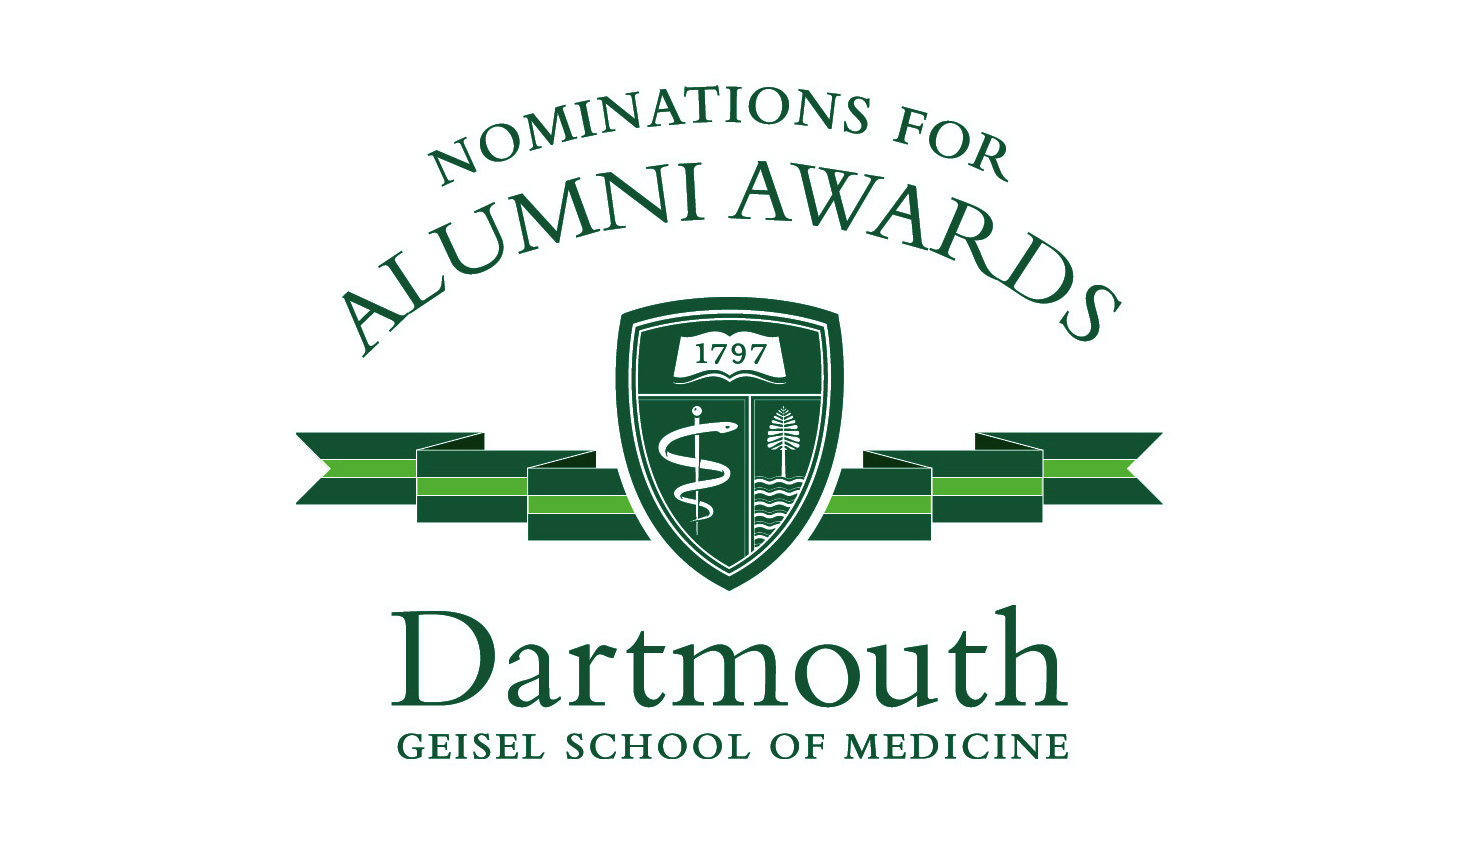 Geisel Alumni Awards: Call for Nominations